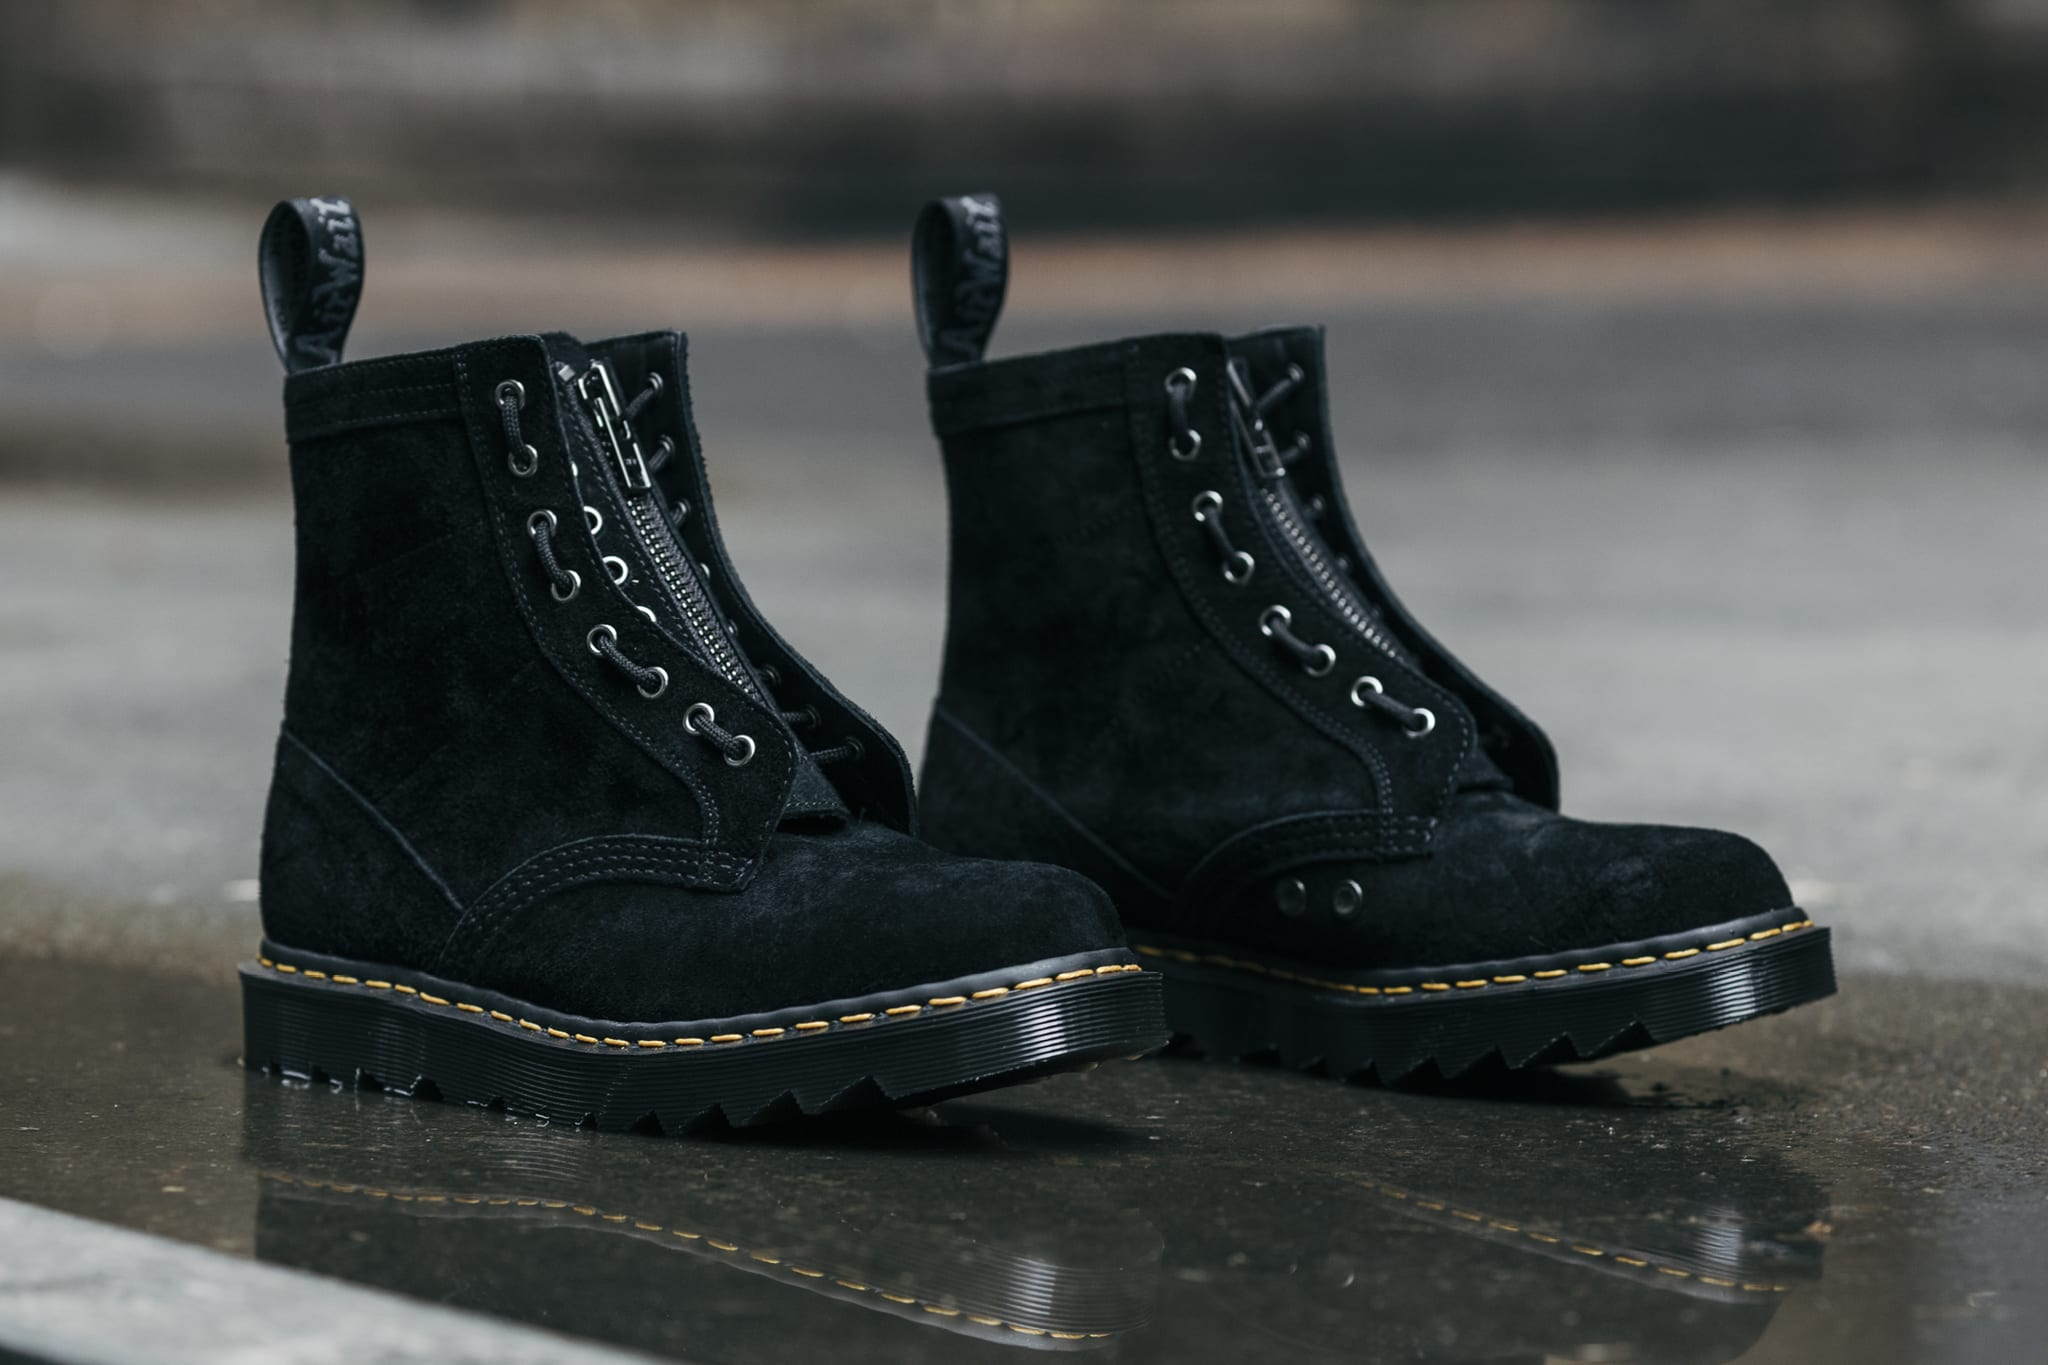 HAVEN Dr. Martens 1460 Jungle Boot